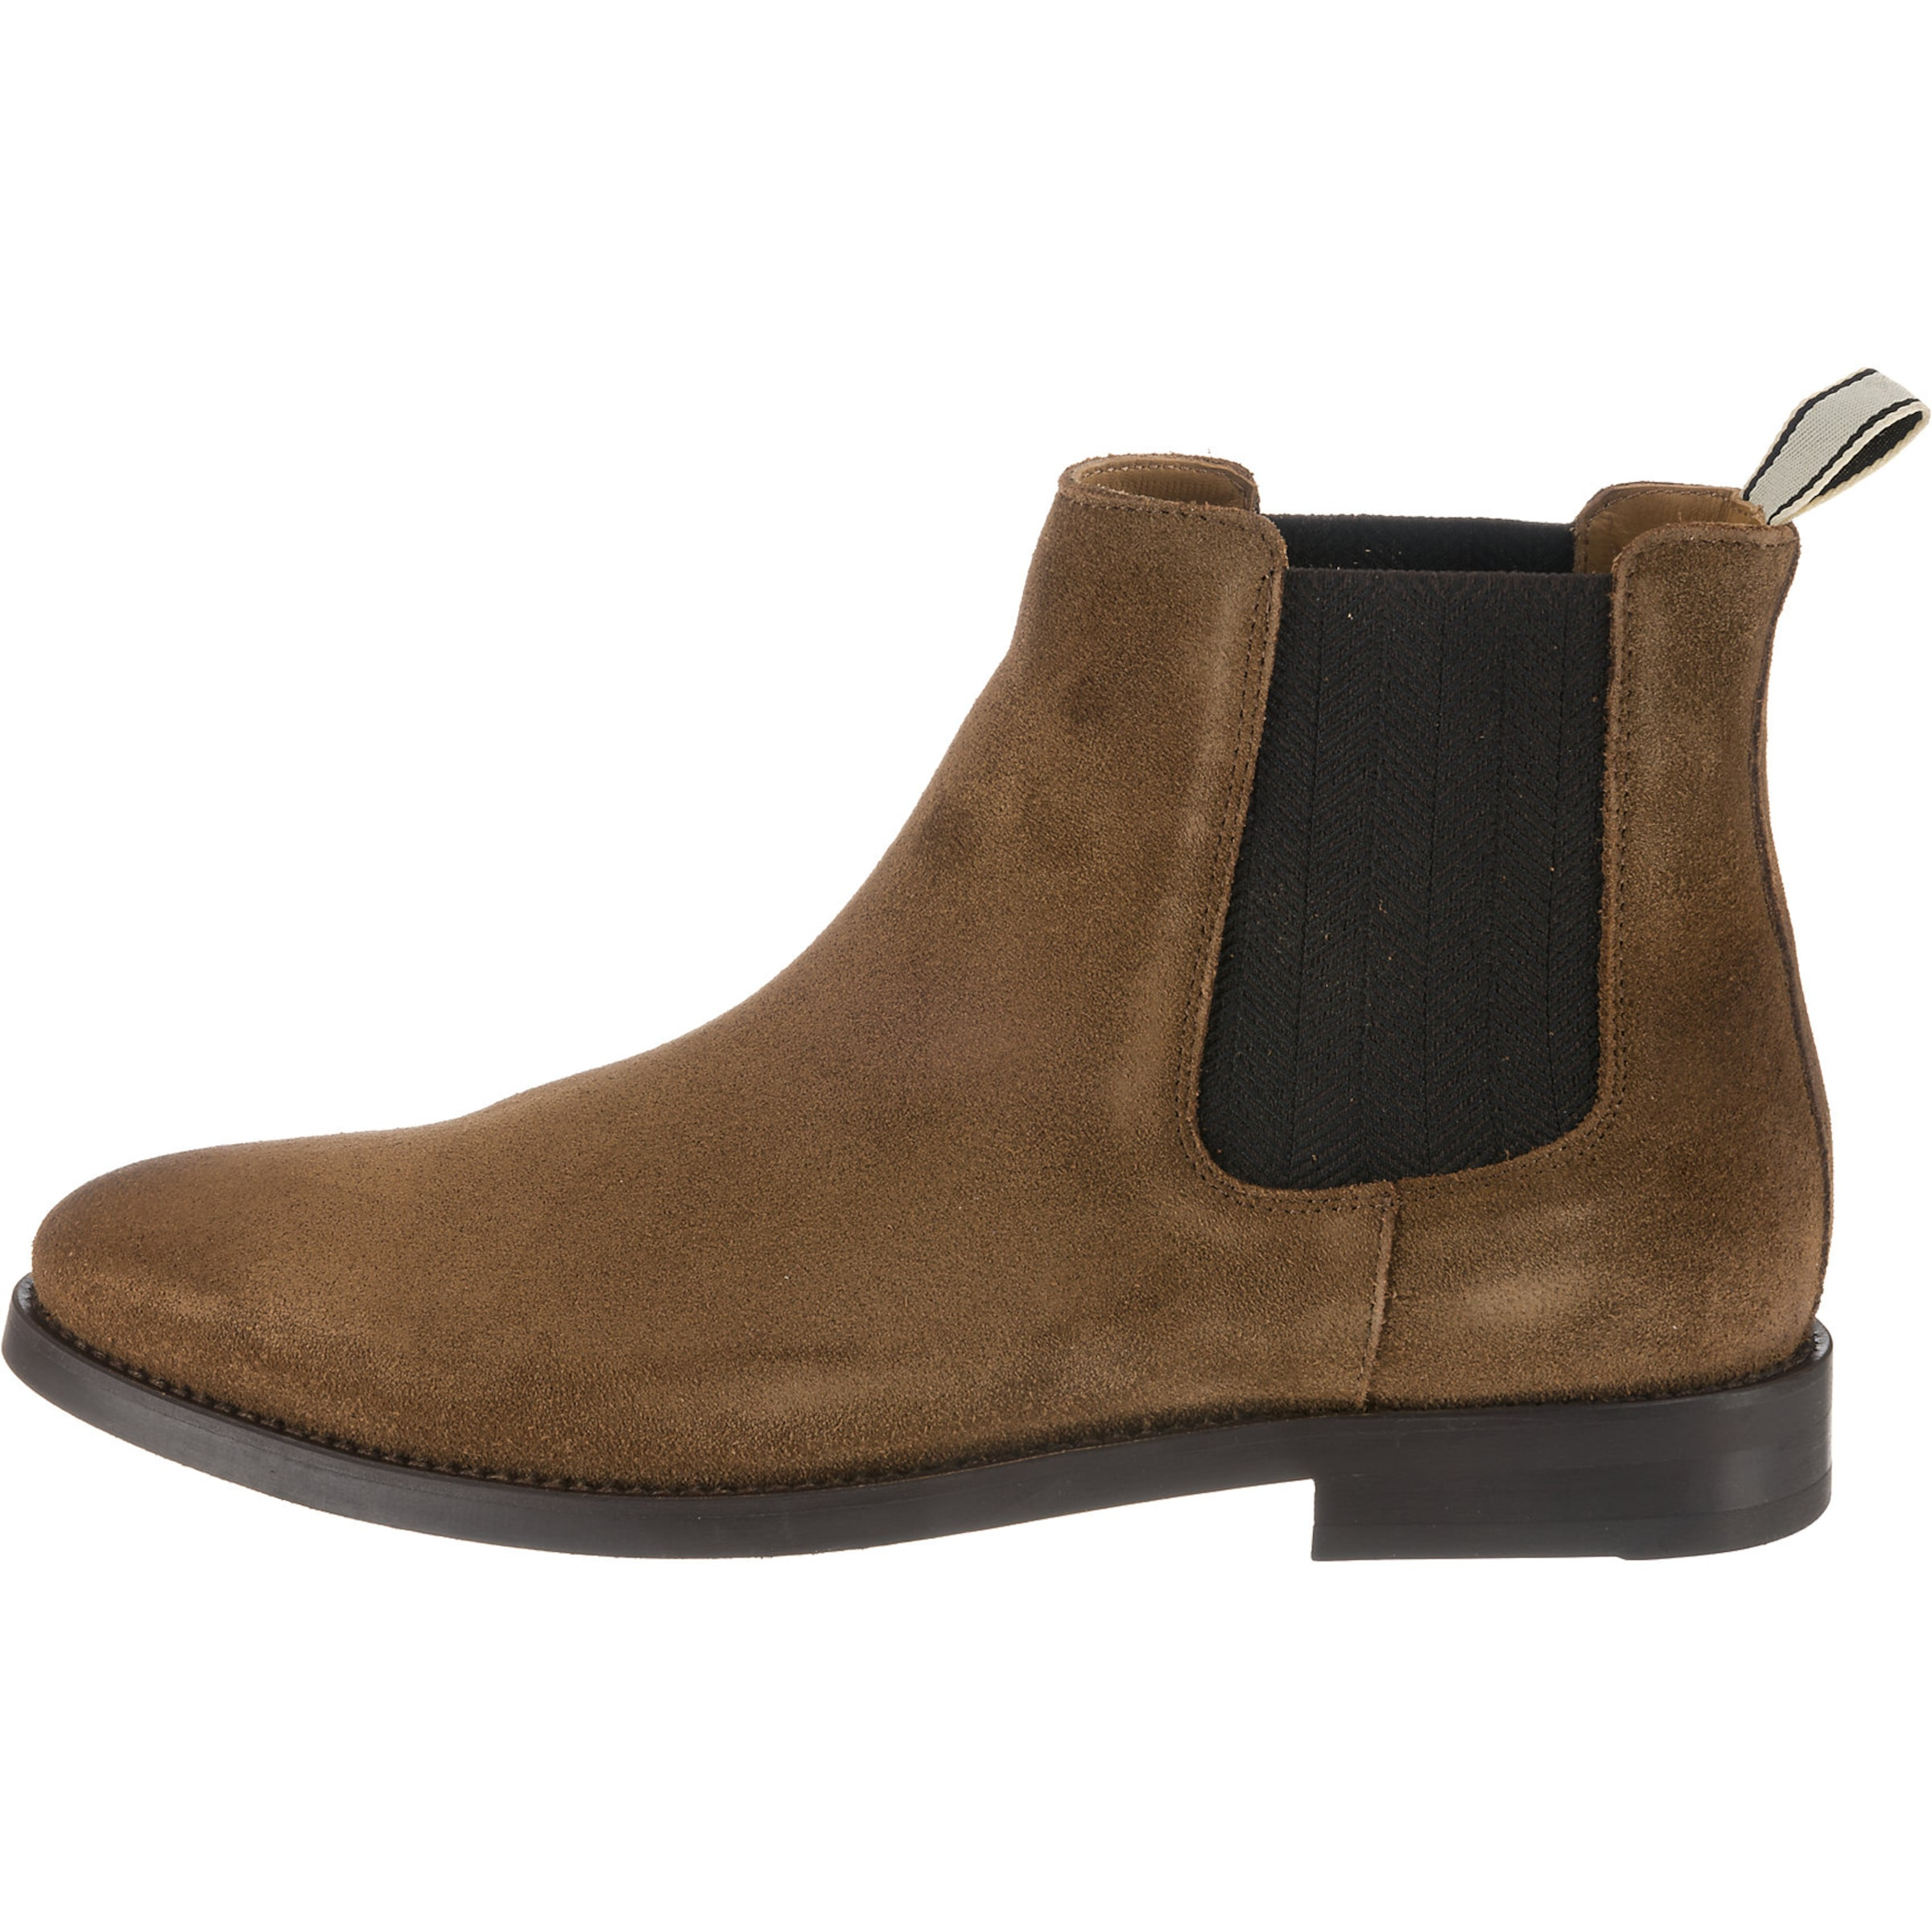 Chelsea 'max Gant In BraunSchwarz Boots ' nkN8OX0wP